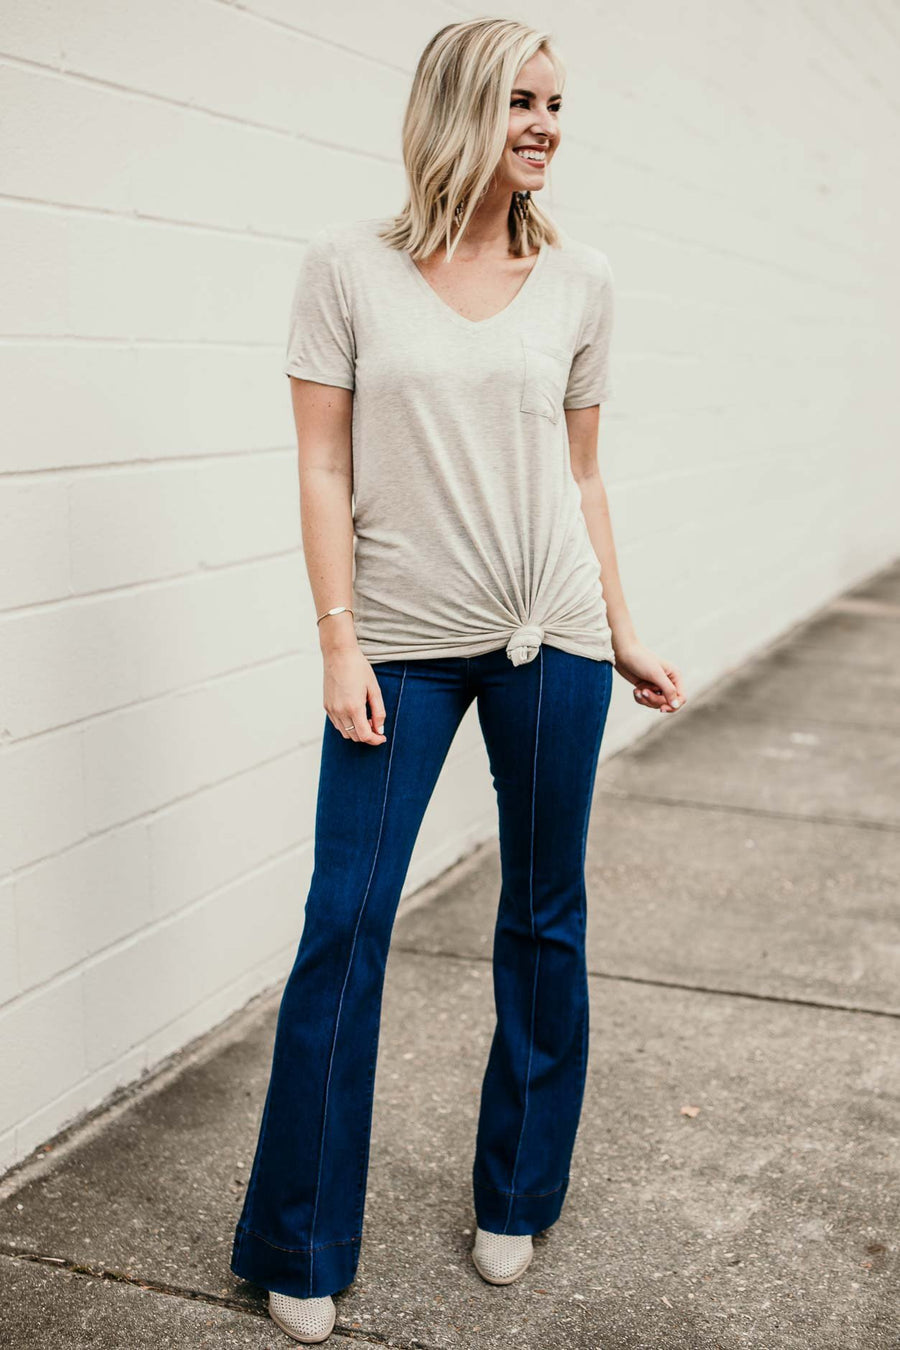 Oatmeal Tie Up Tunic Tee